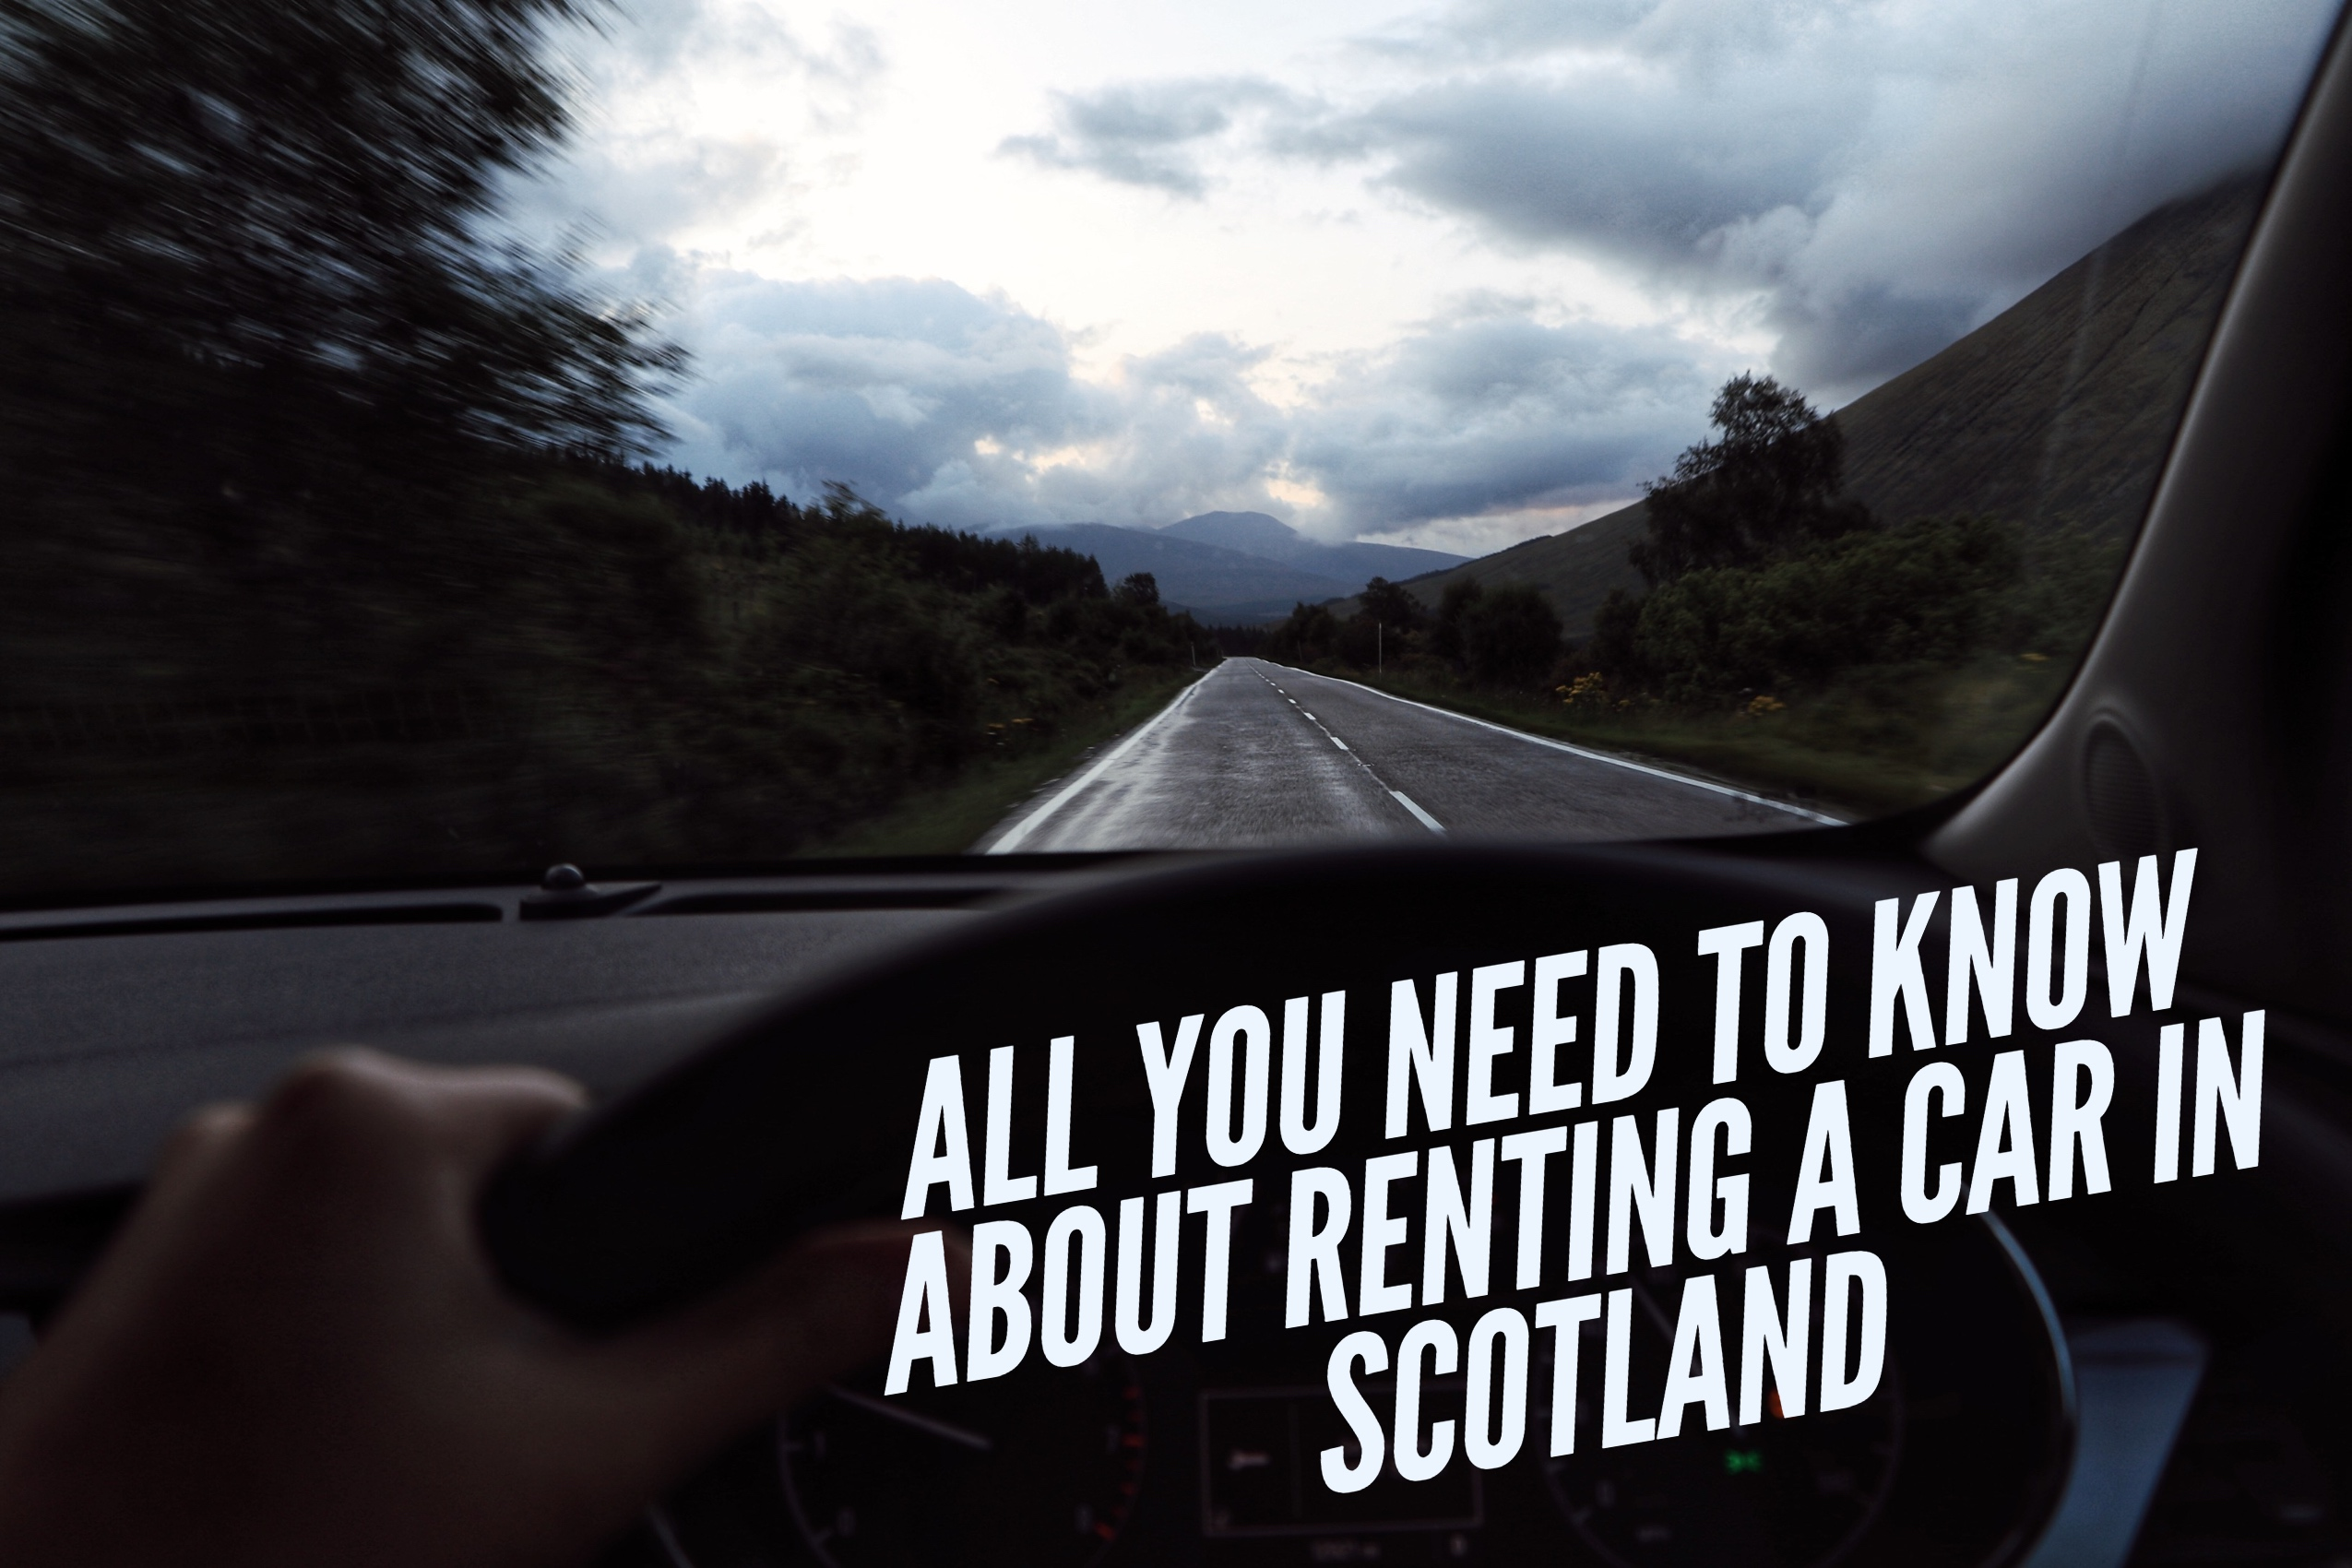 All you need to know about renting a car in Scotland